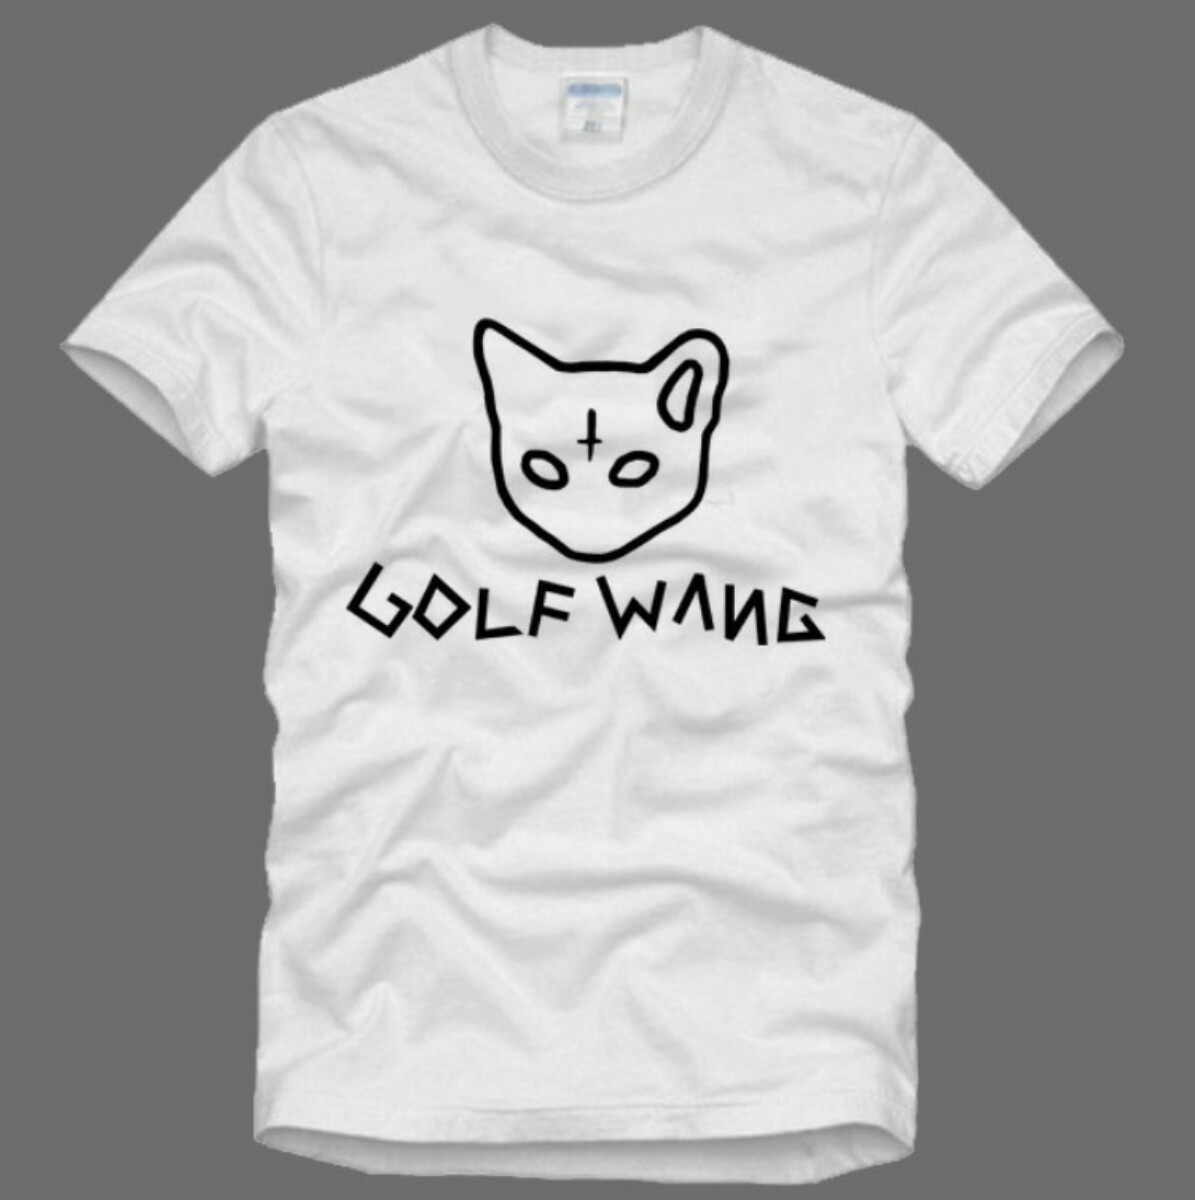 7457ff7add4c camiseta odd future golf wang. Carregando zoom.